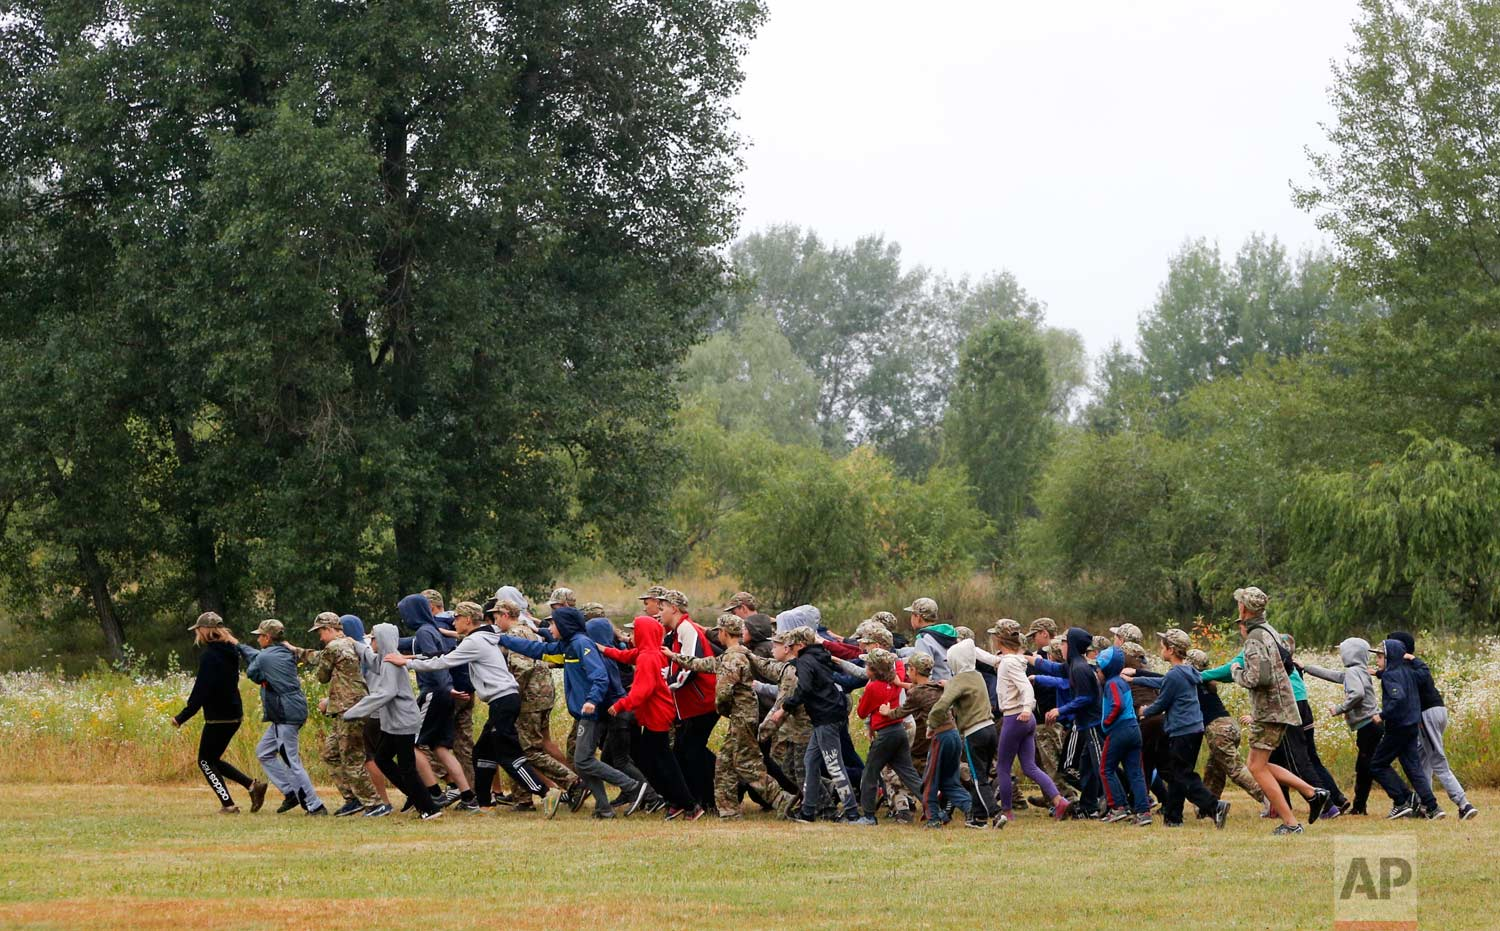 In this photo taken on Friday, July 14, 2017, students at a paramilitary camp for children take part in orientation exercises outside Kiev, Ukraine. (AP Photo/Efrem Lukatsky)